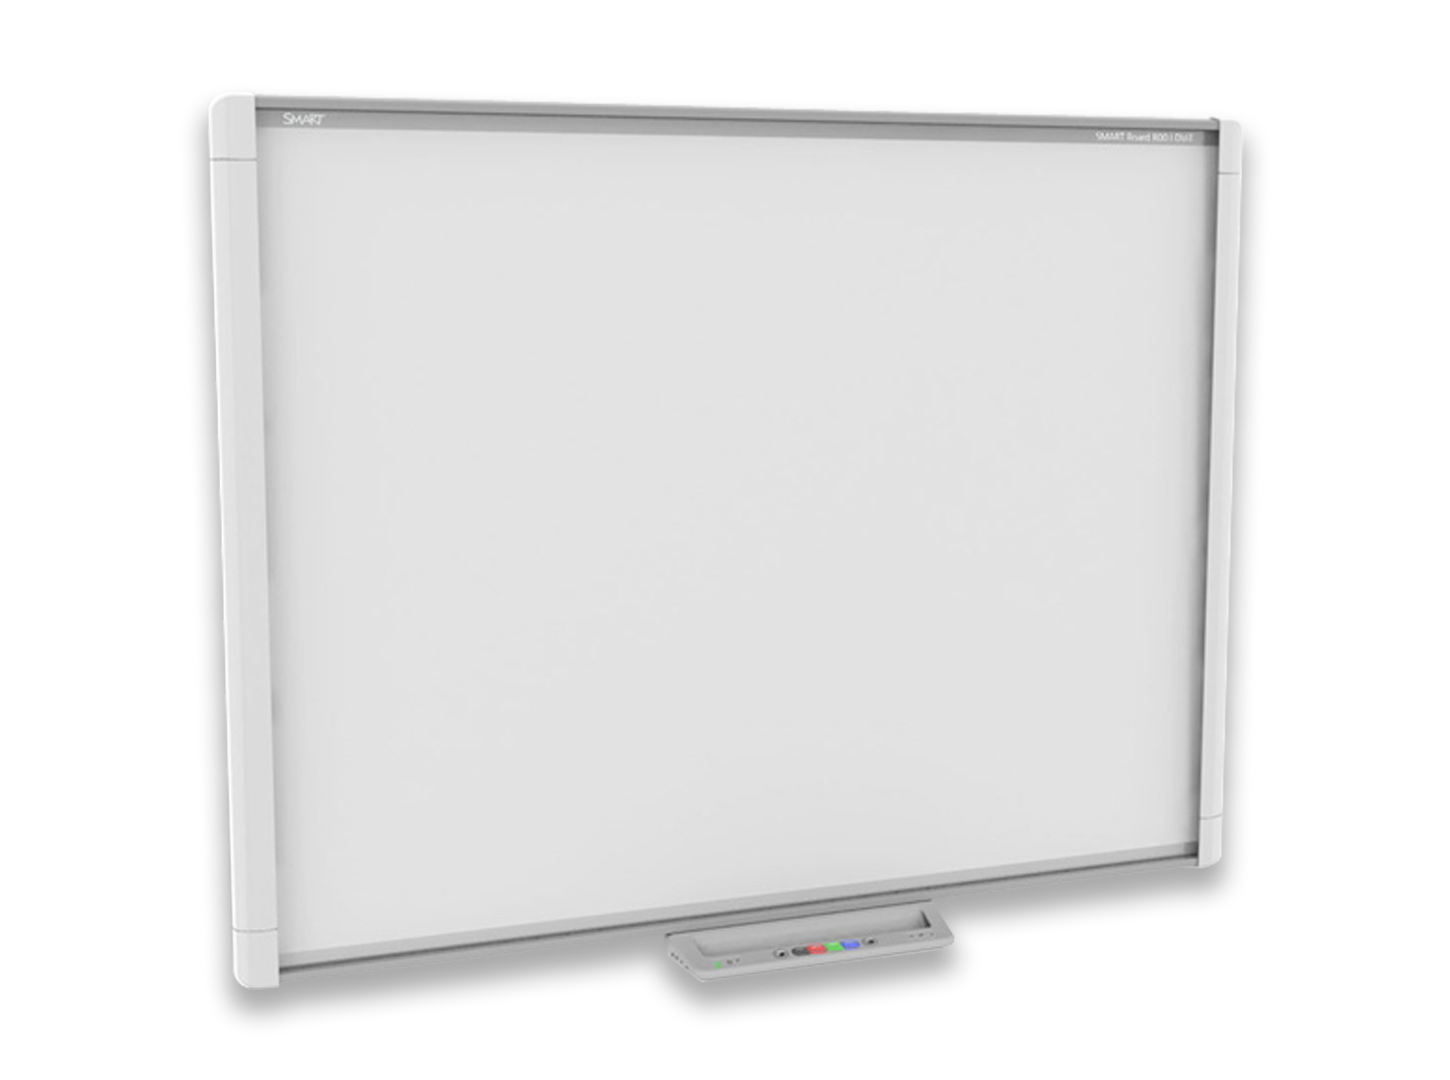 Smartboard drawing. Smart board m and